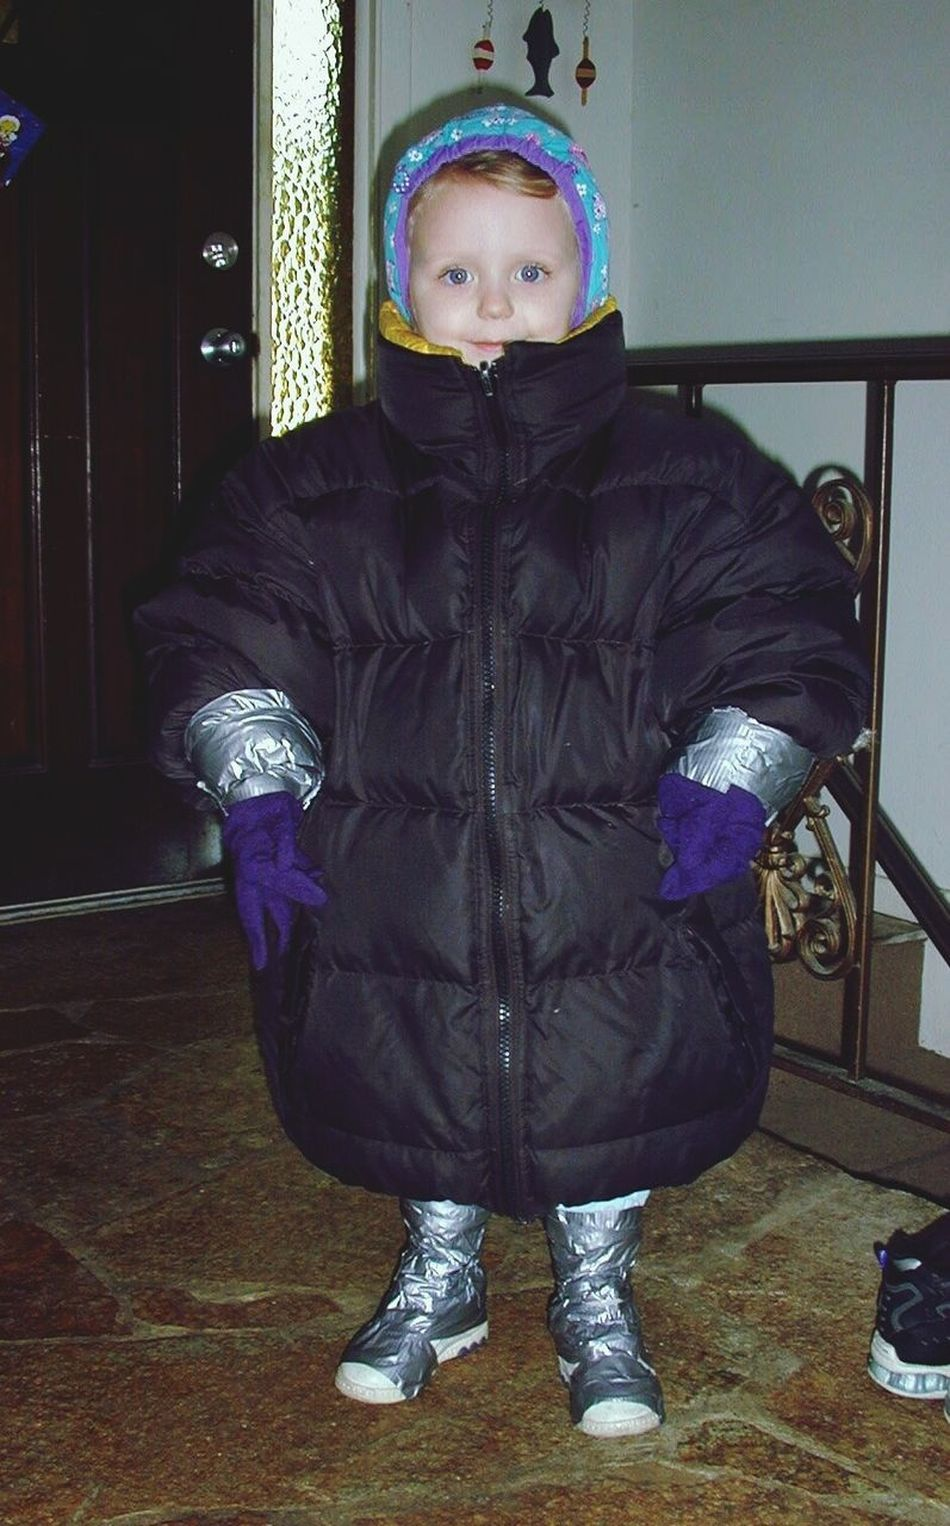 Front View Looking At Camera One Person Real People Children Only Beautiful People Child Looking At Camera Ready To Ski Snowboarding Snowy Morning Sledding ⛄ Sledding Fail Sledding Outfit Girl Girl Power Childhood Children Photography Childhood Memories